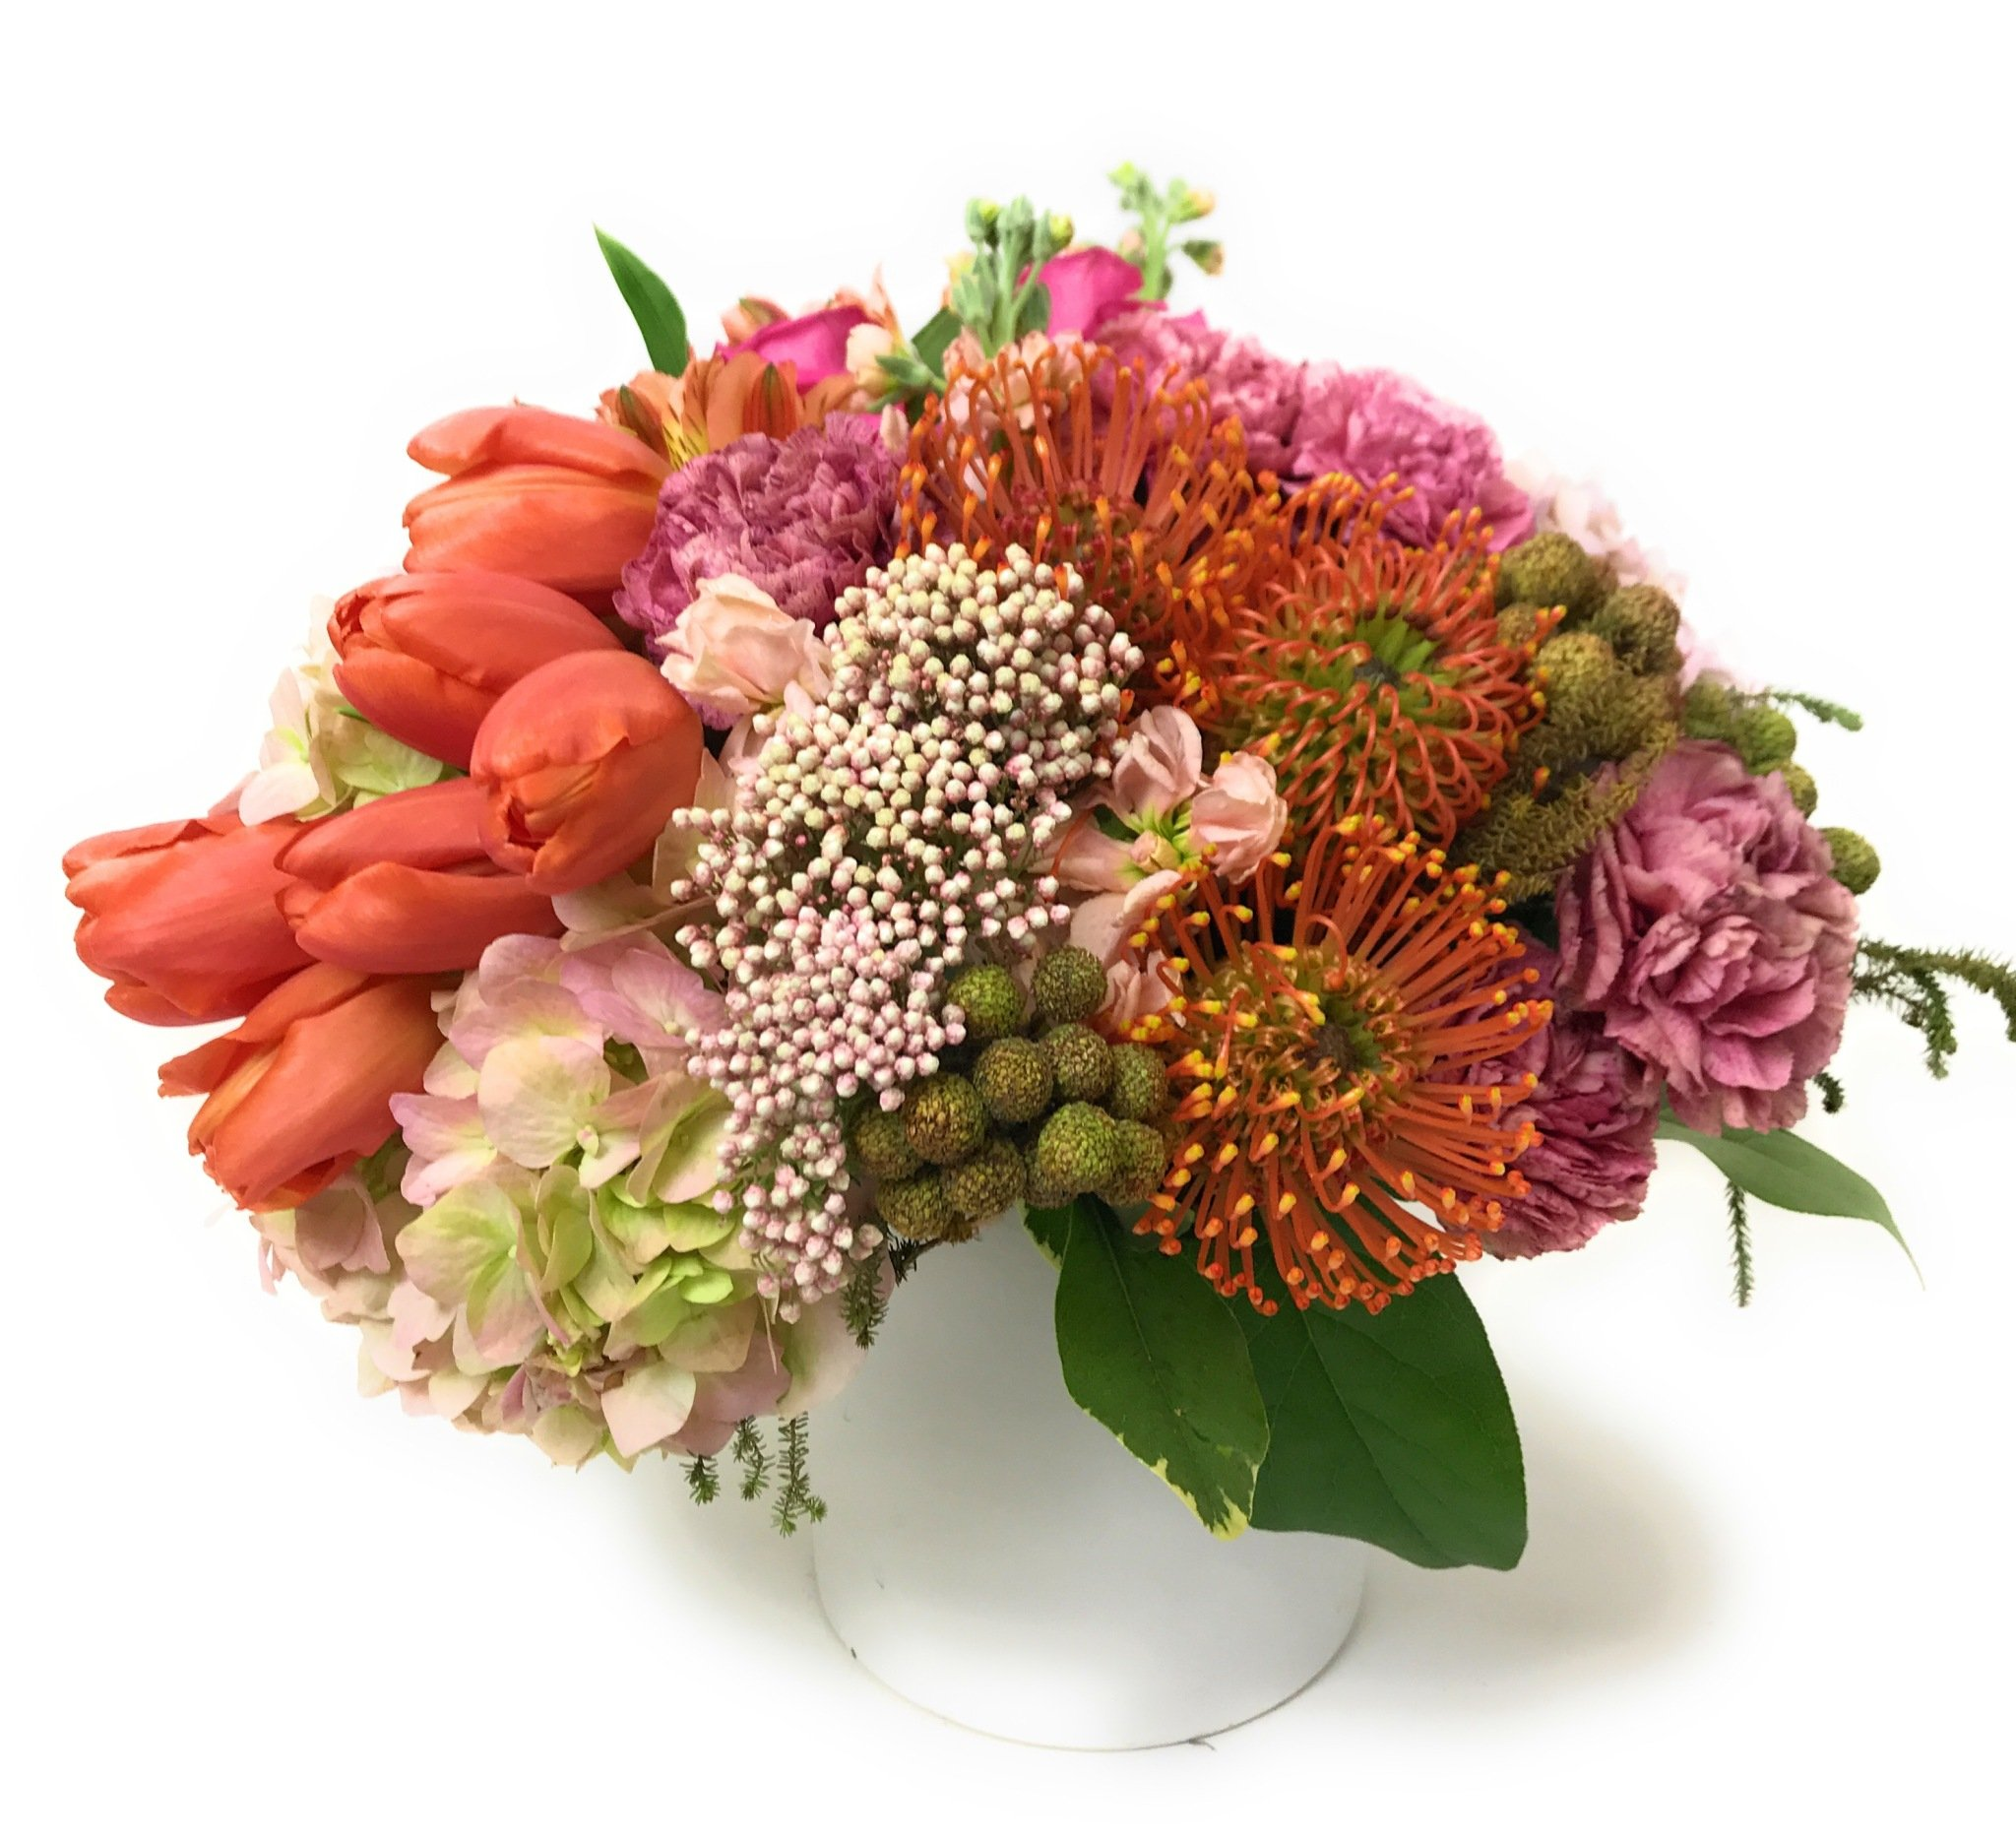 Passion Fruit by Metro Florist - Fresh Flowers Hand Delivered- Washington DC Area